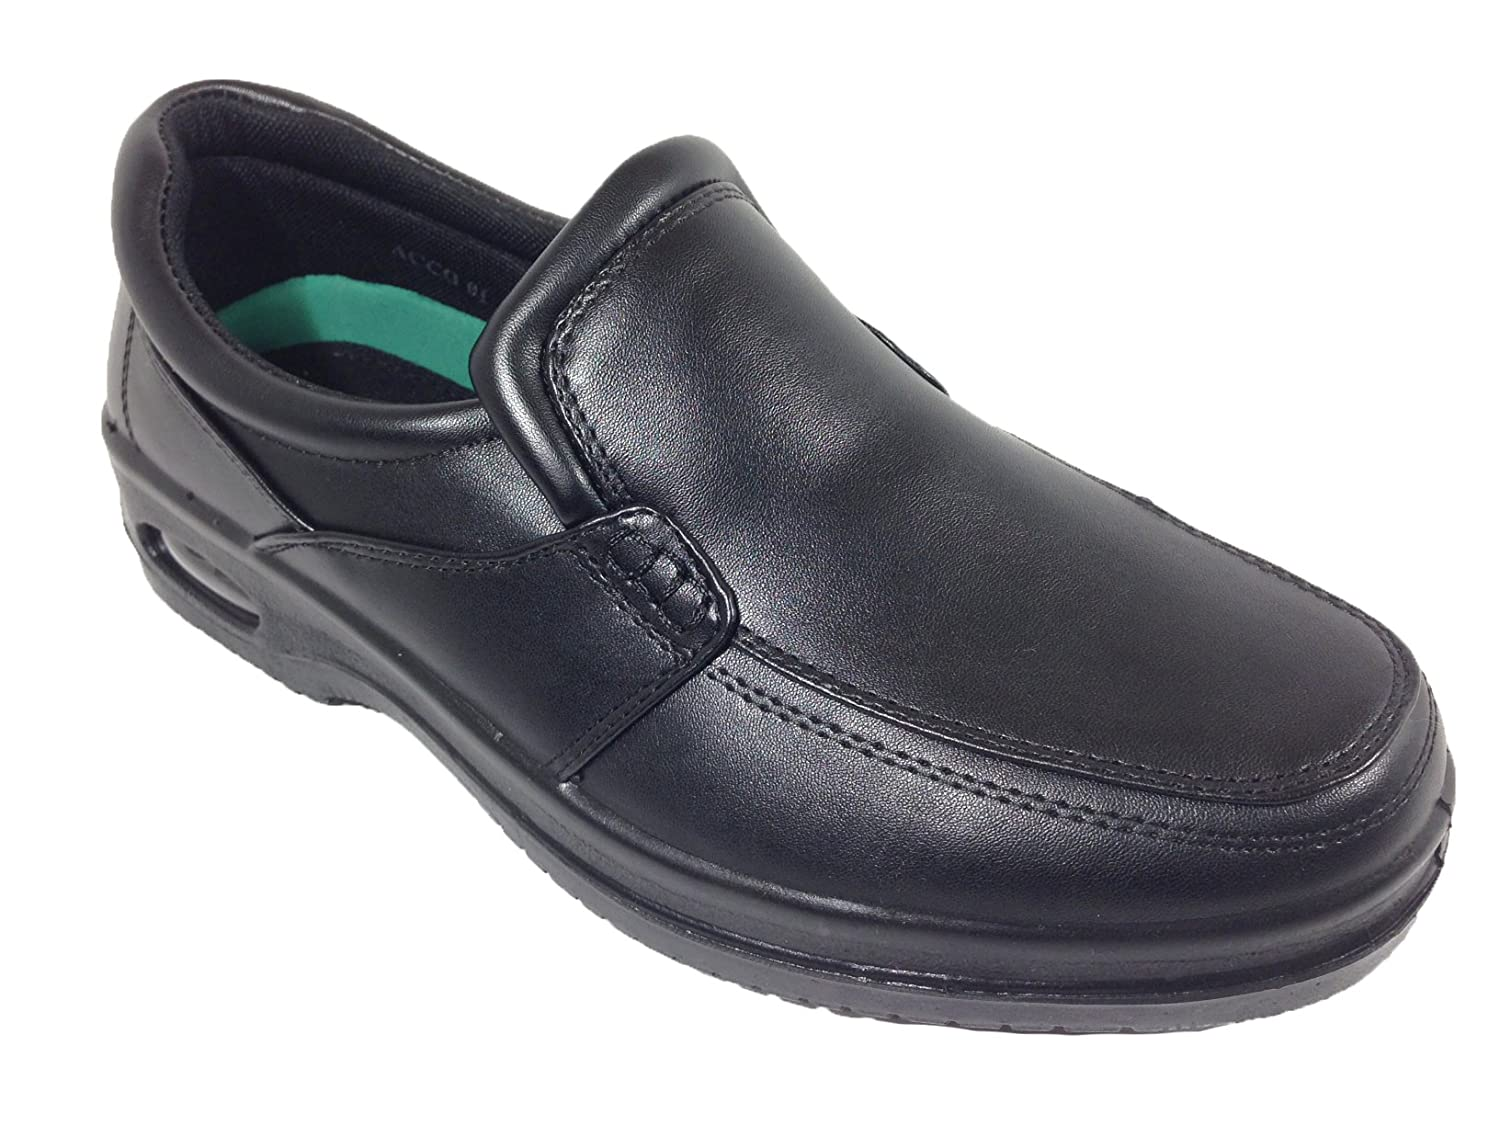 Brix メンズ B01L5LFYDA 10.5 D(M) US|Slip On A Slip On A 10.5 D(M) US